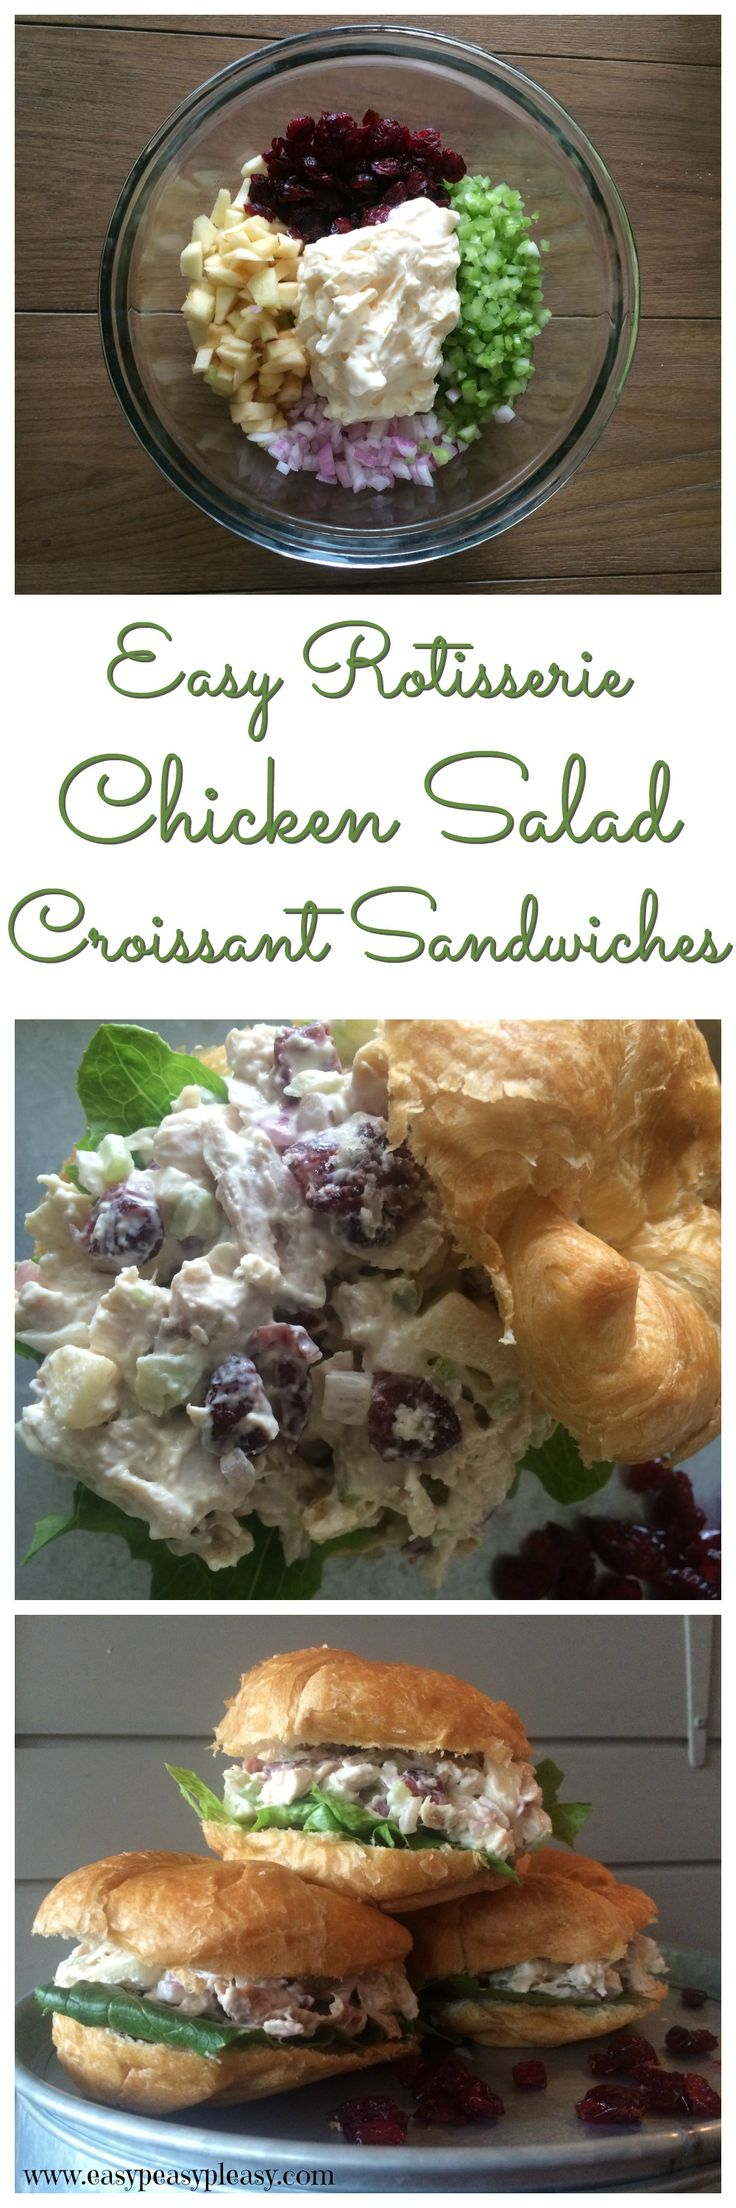 Easy Rotisserie Chicken Salad Croissant Sandwiches Are Perfect For Parties Potlucks Baby Showers